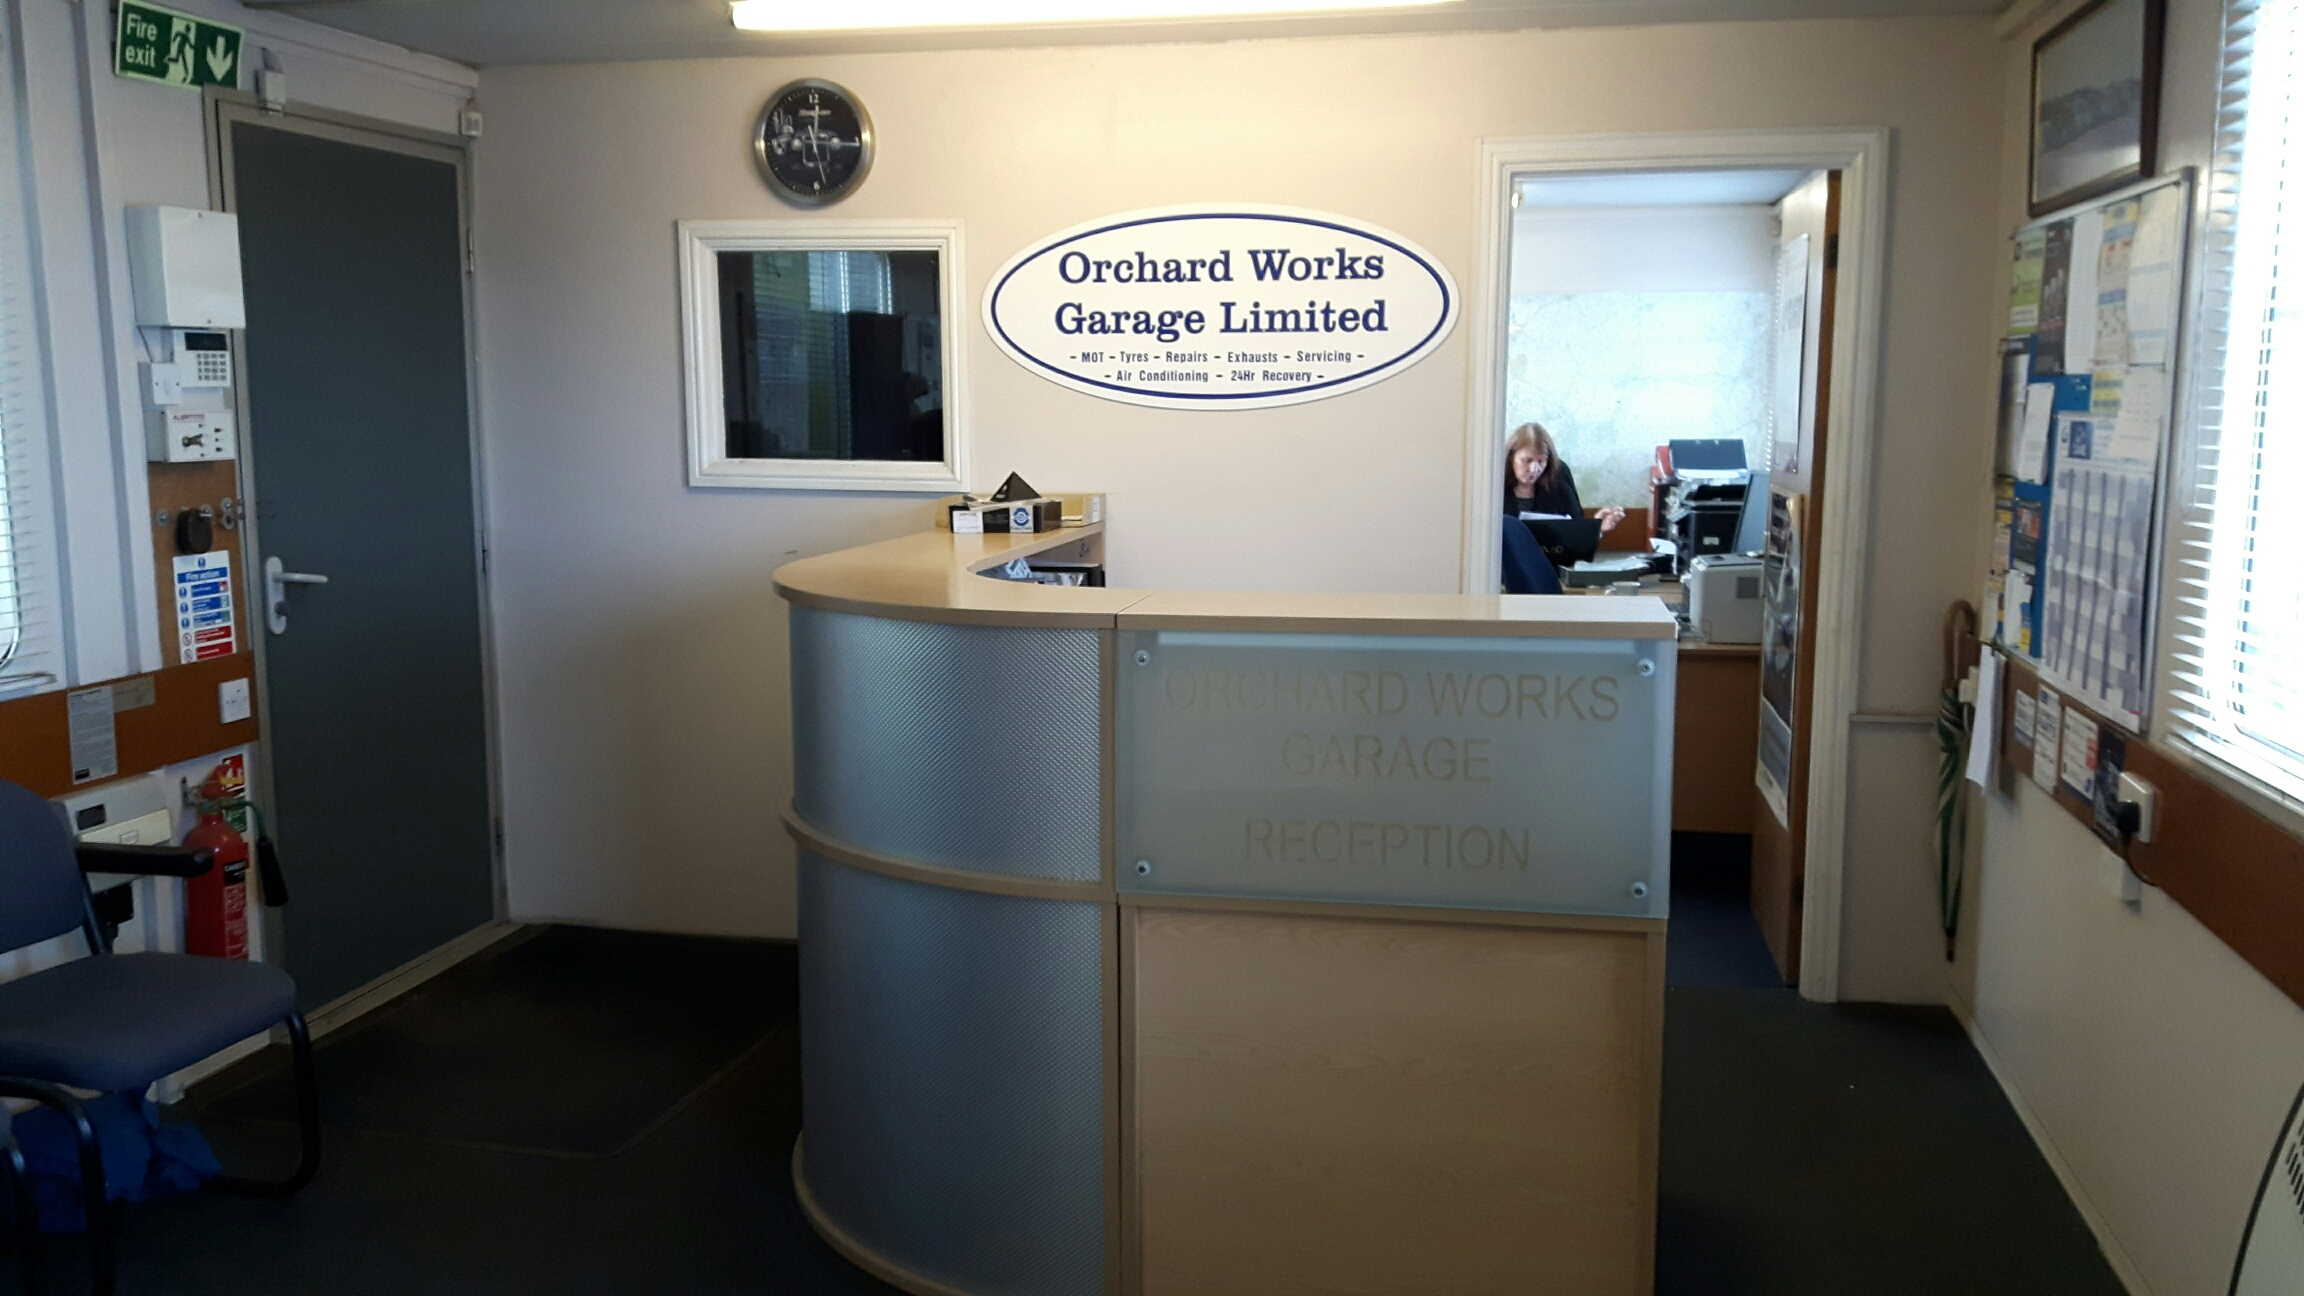 Orchard Works Garage Ltd